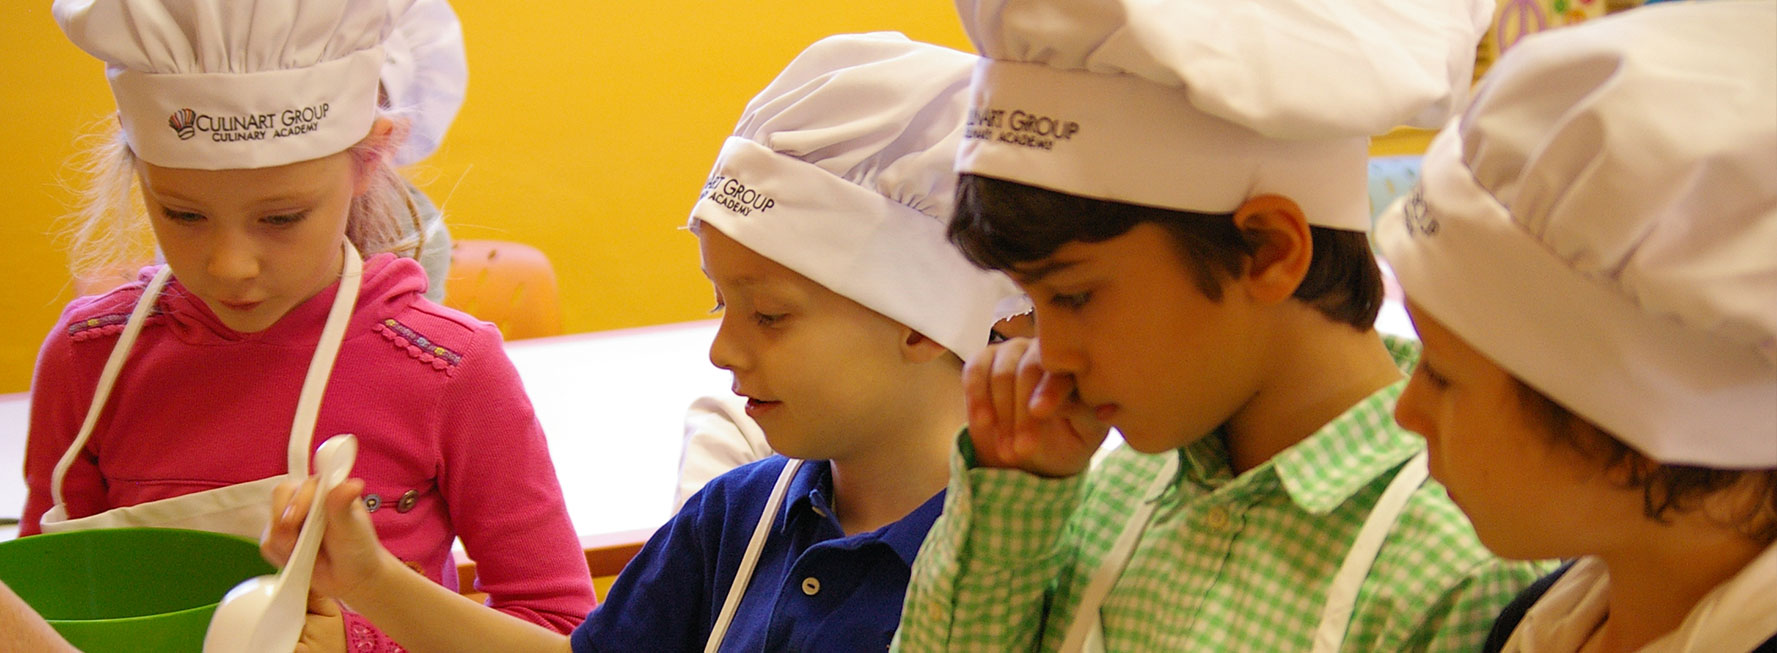 Private School Dining Culinary Wellness Food Safety Marketing